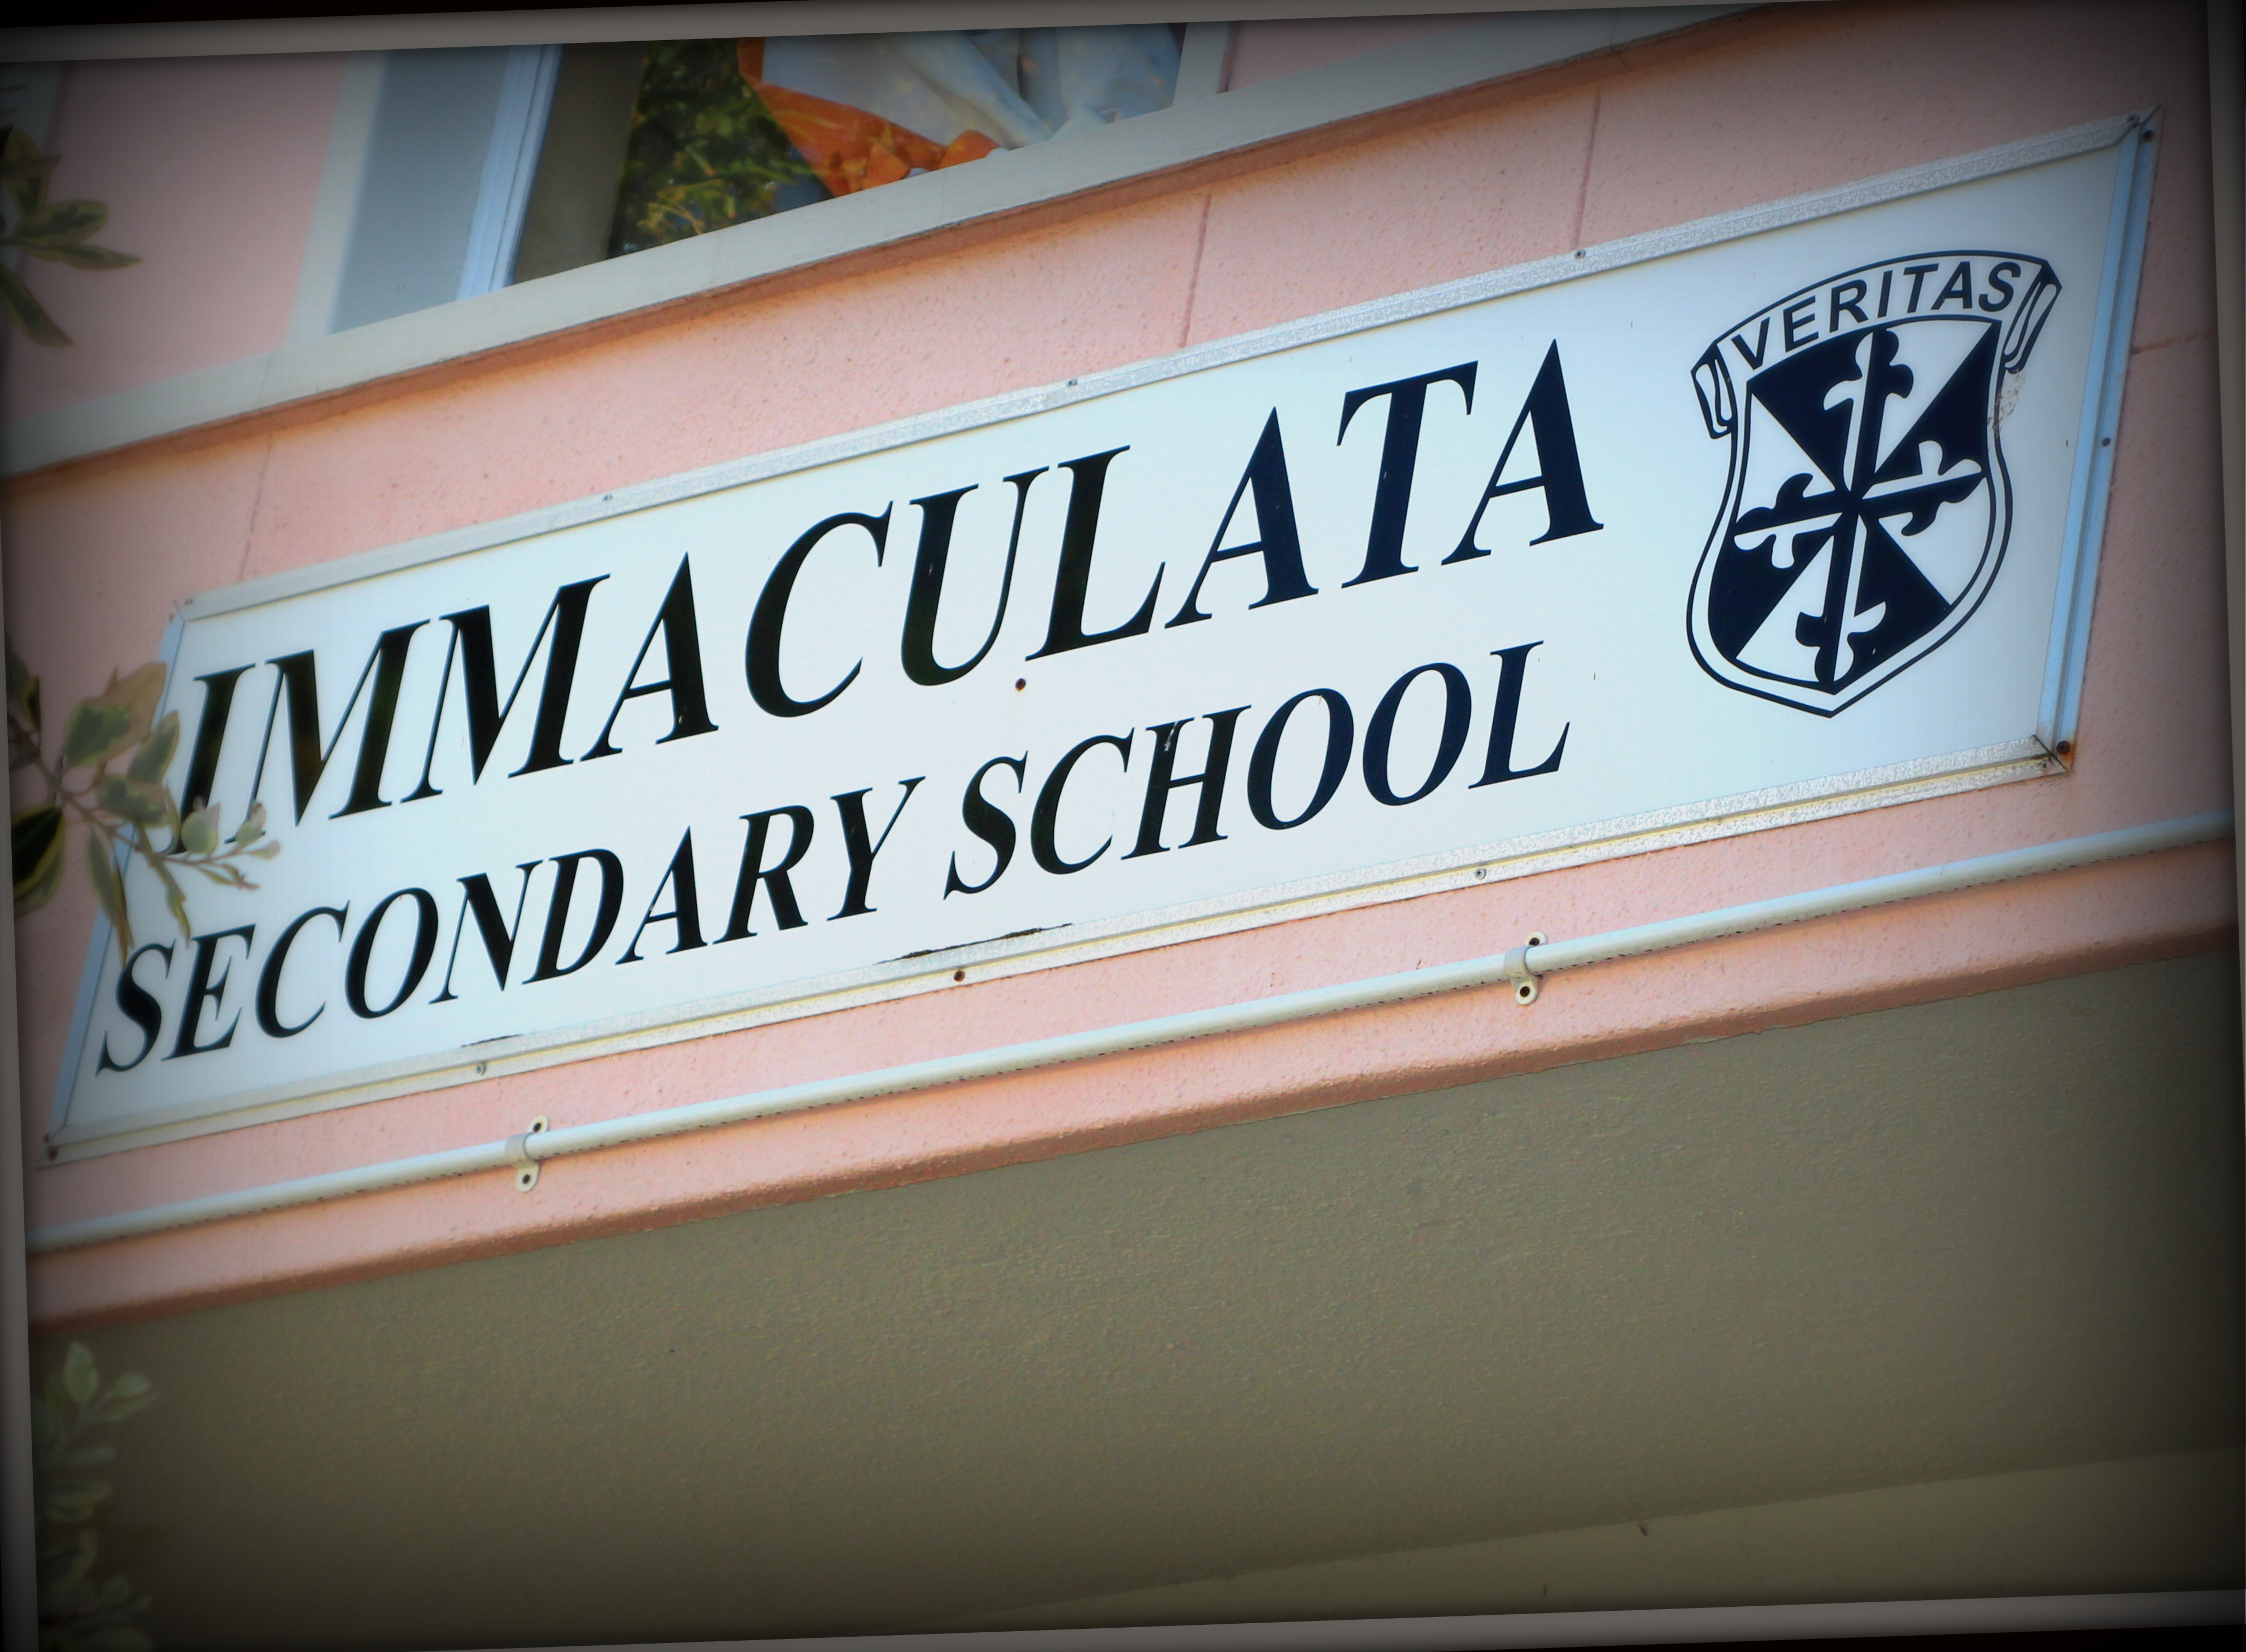 Immaculata High School